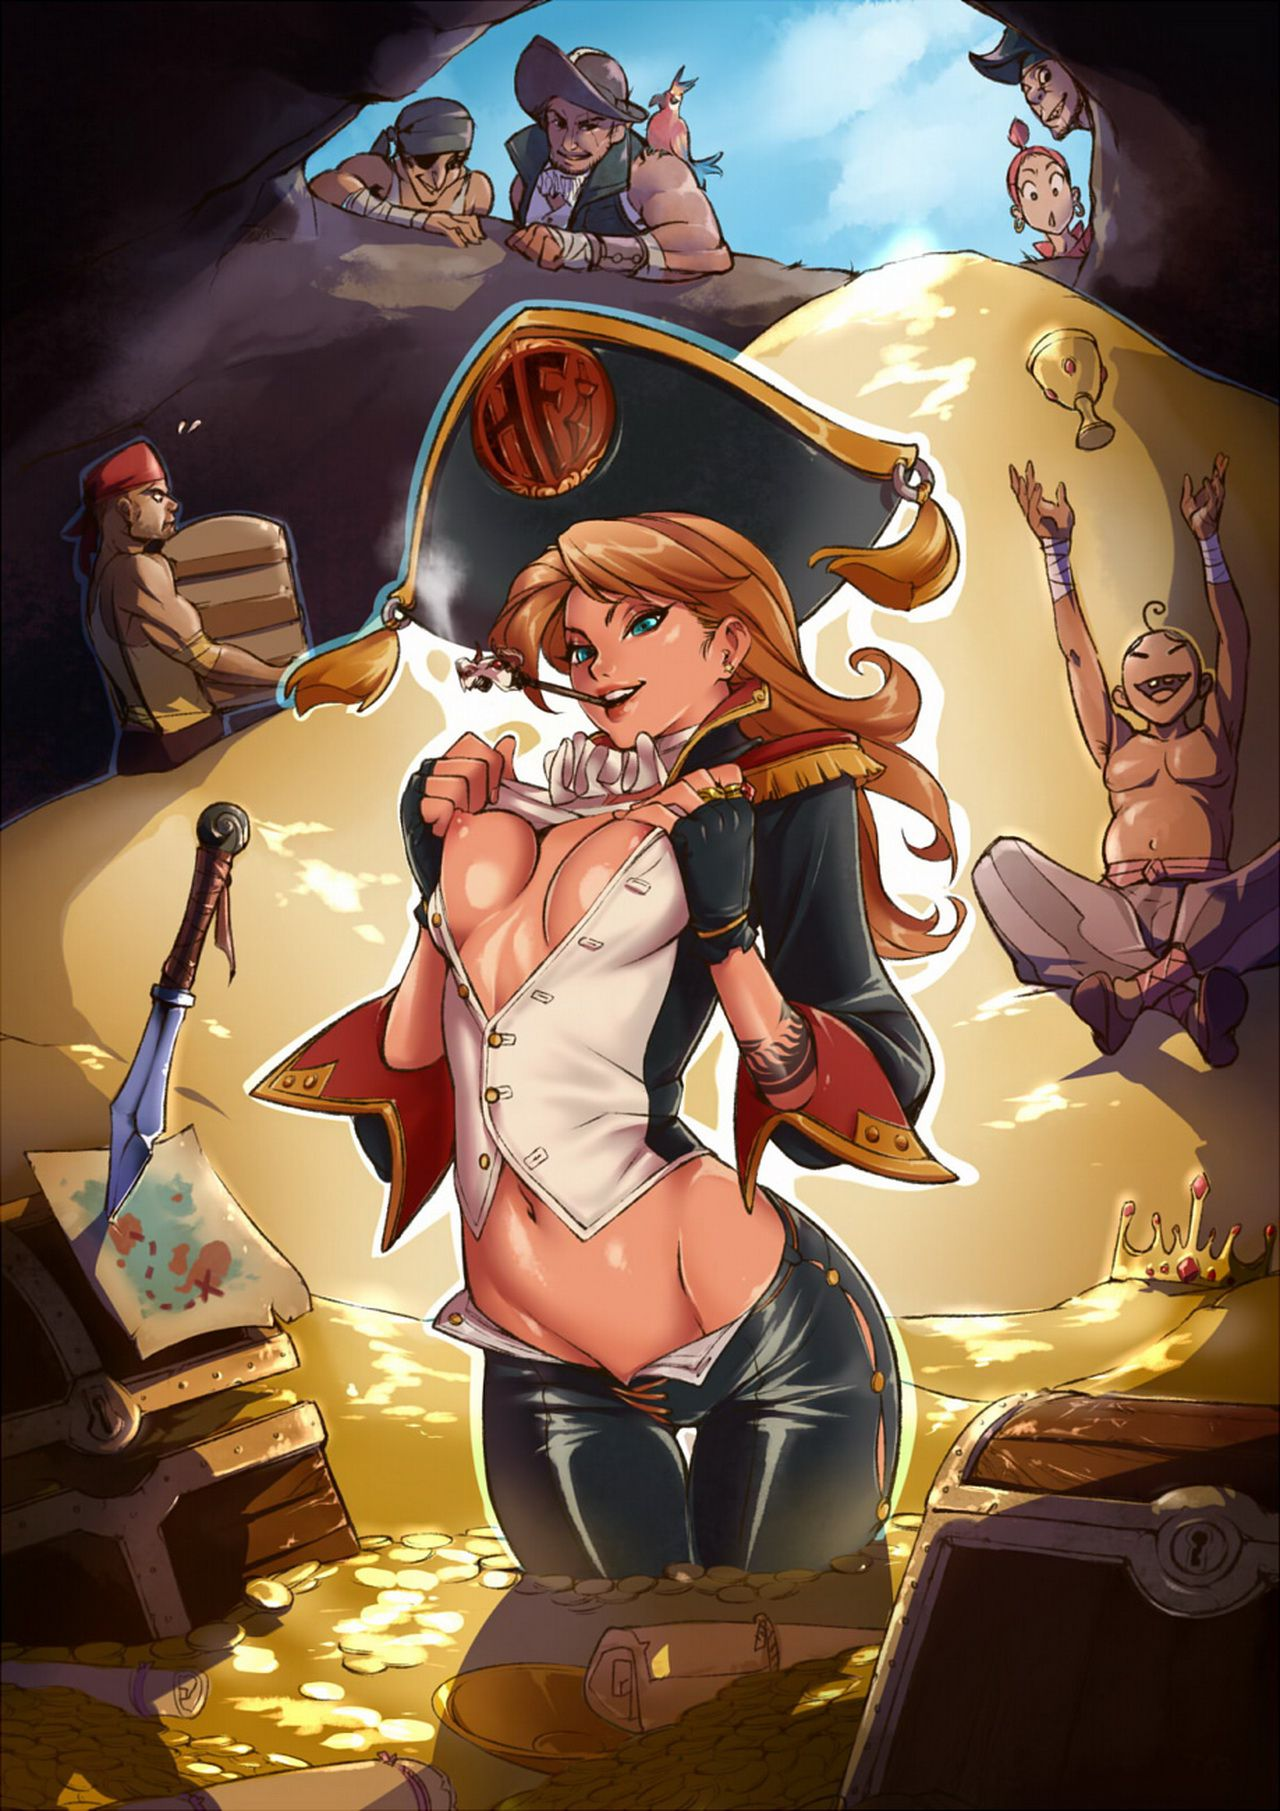 Erotic pirates art sexy tube